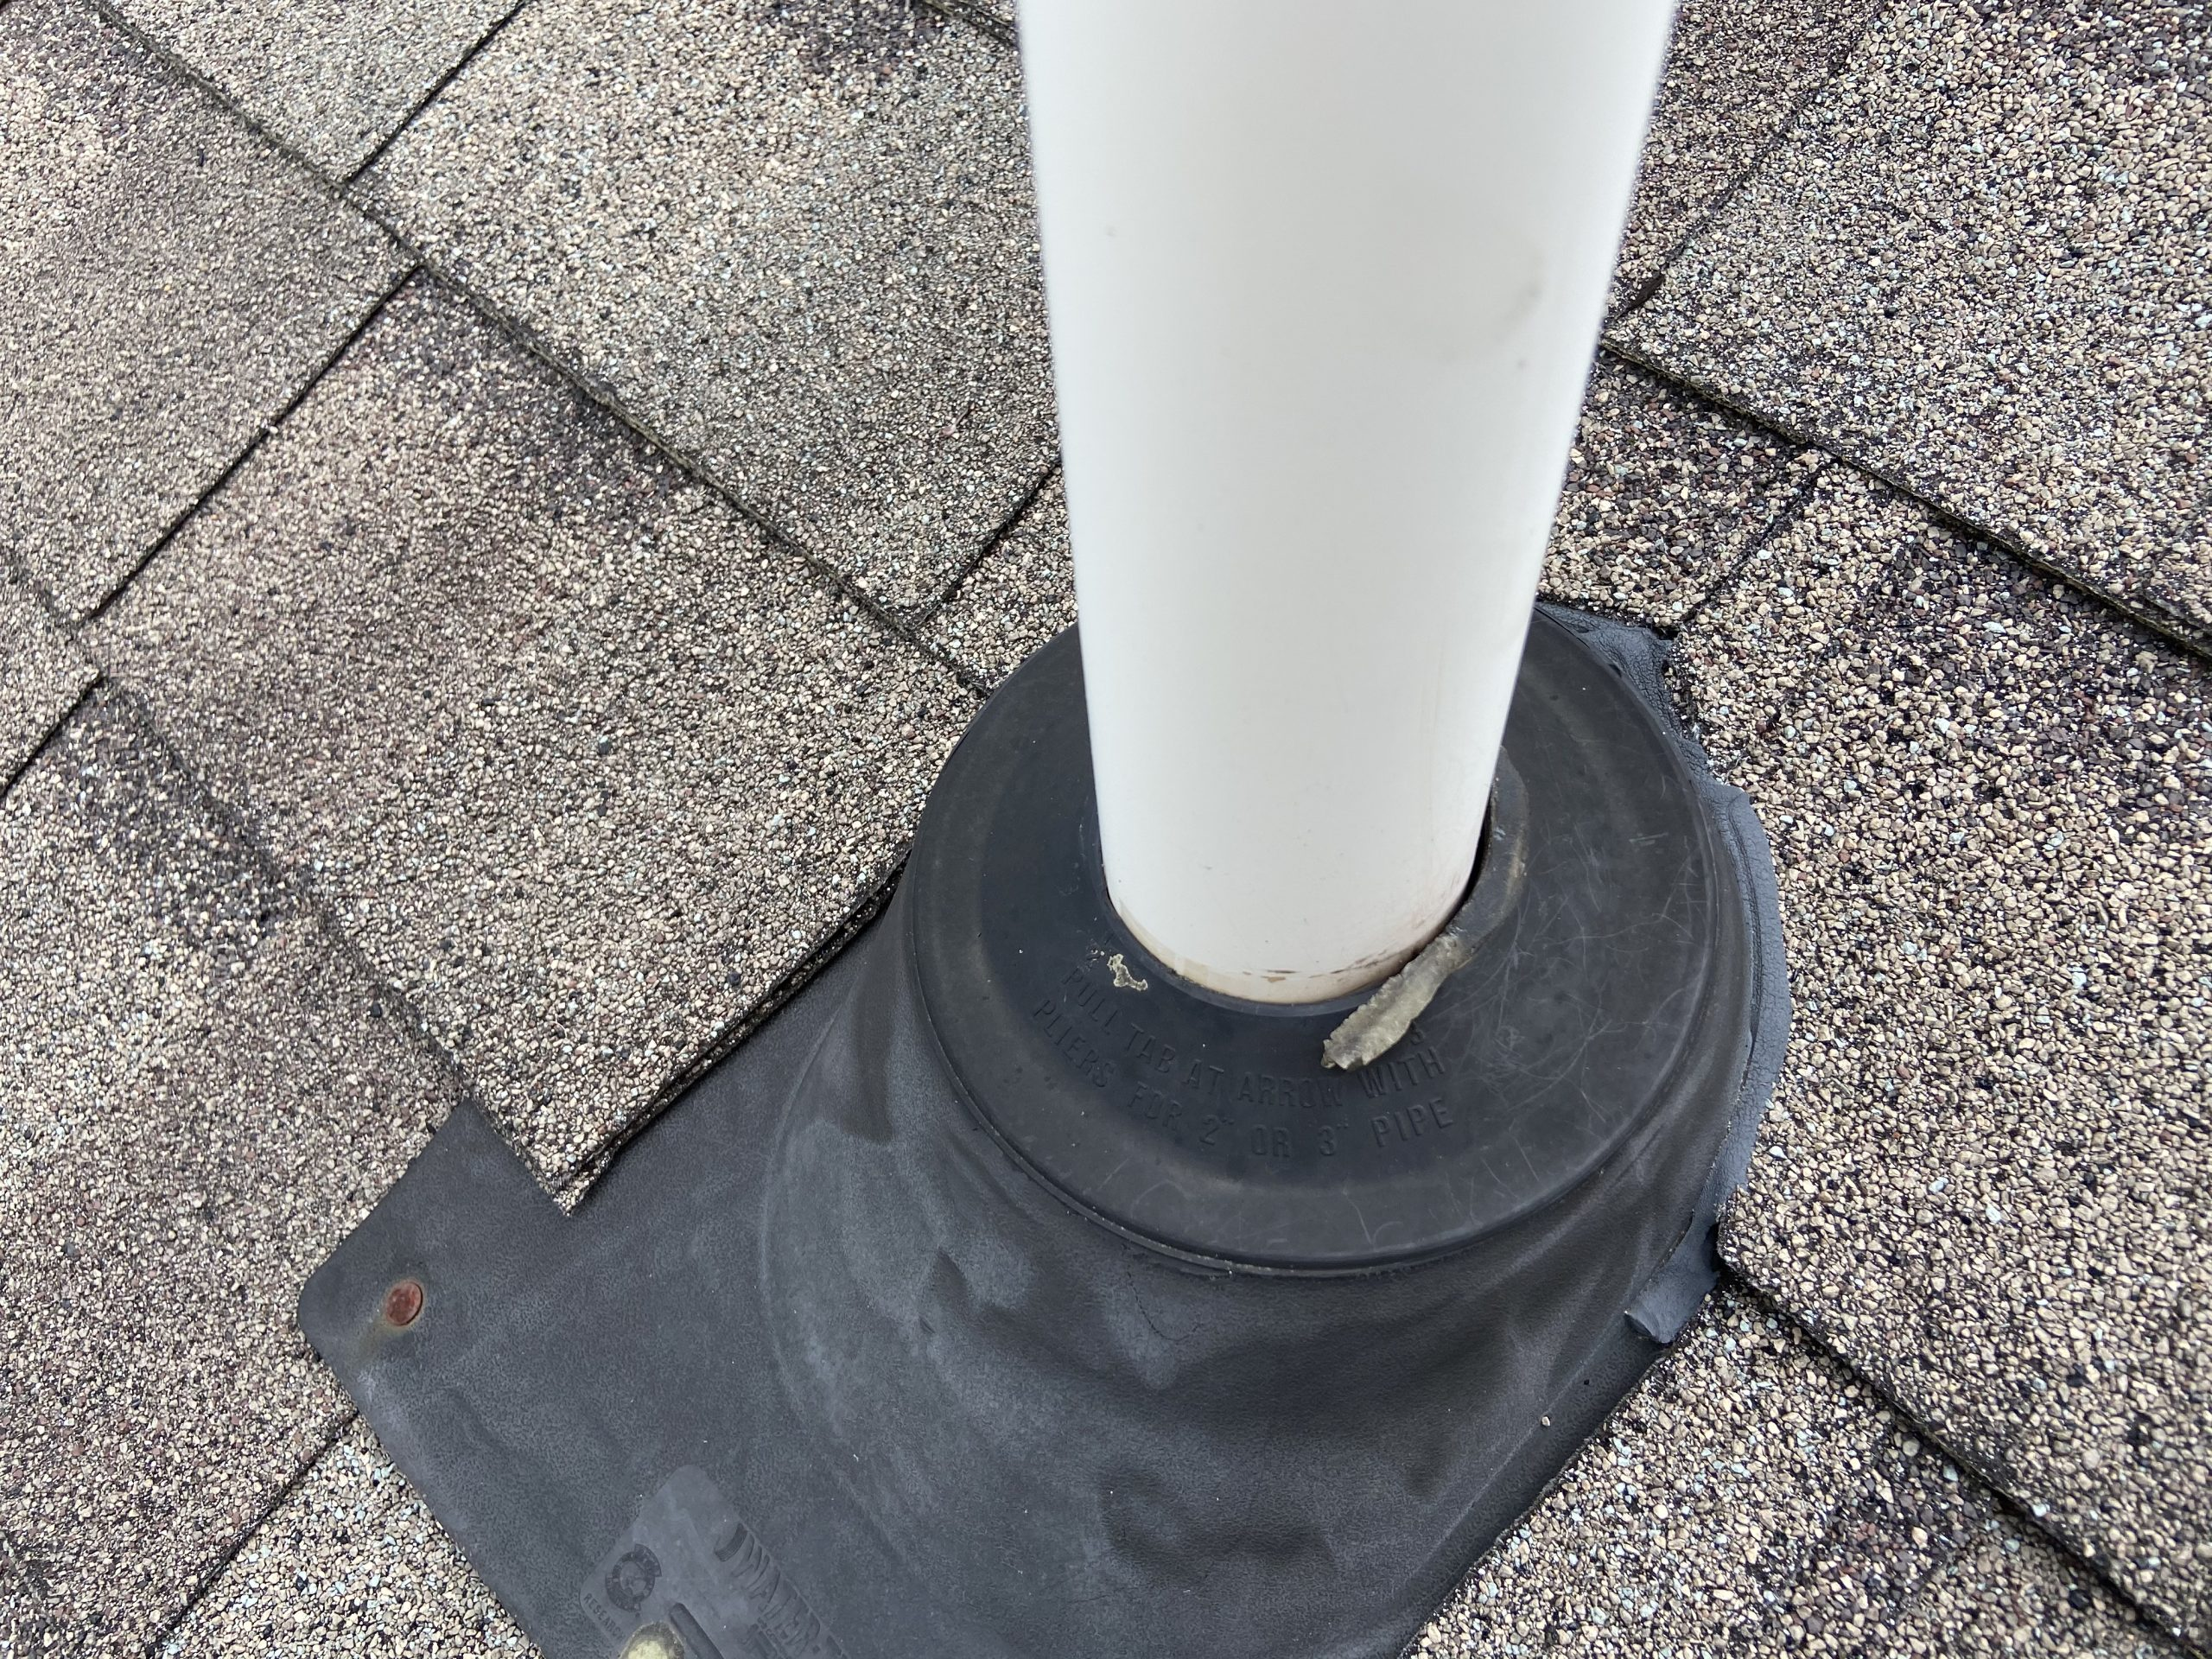 This is a picture of a roofing pipe that is causing leaks and ceiling stains